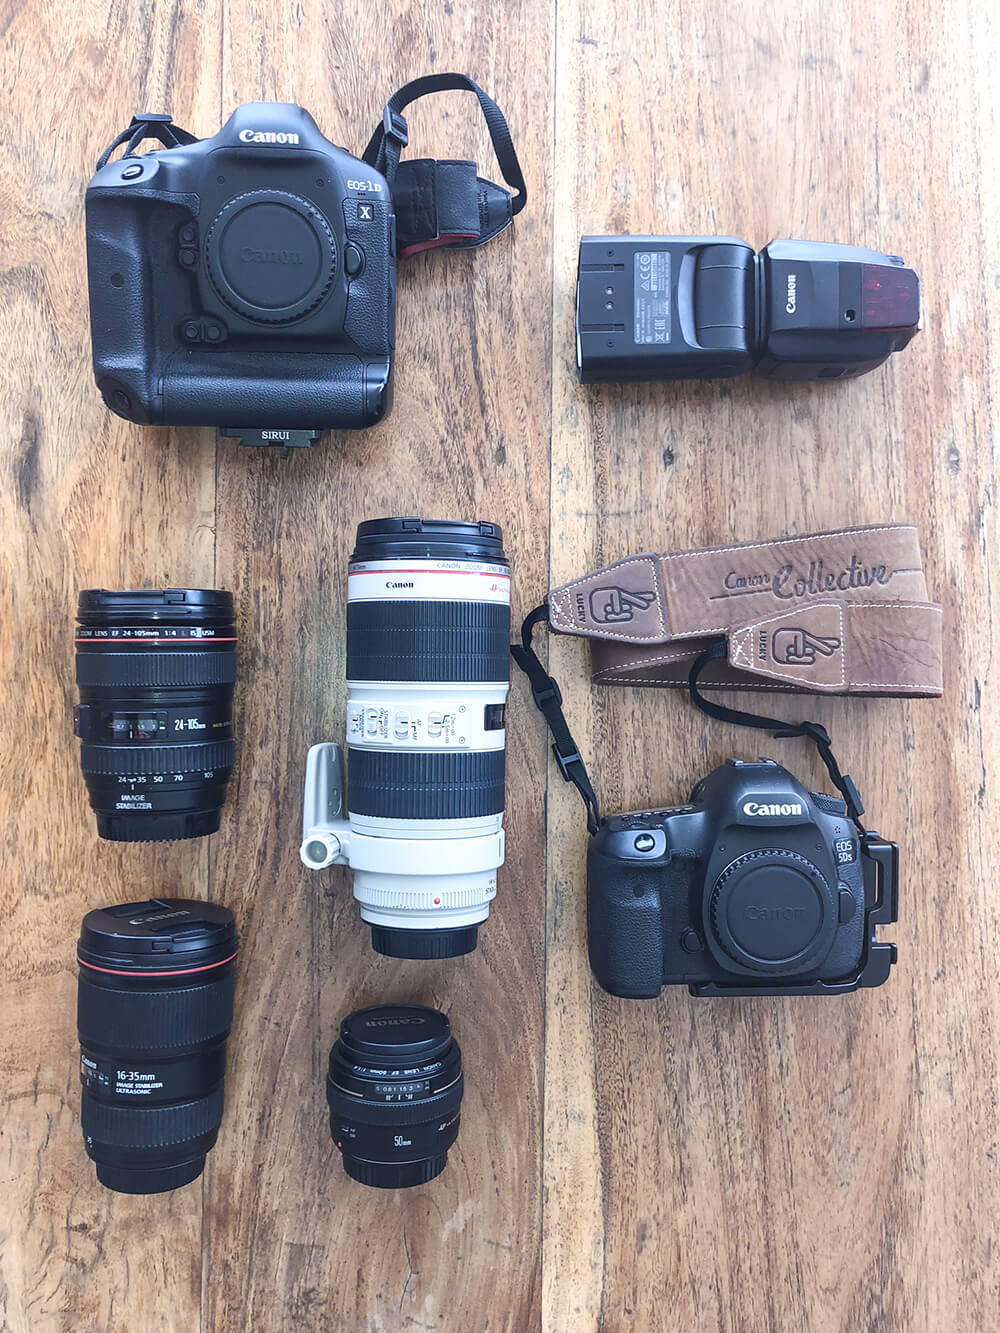 Flatlay of Jules Ingall's photography gear